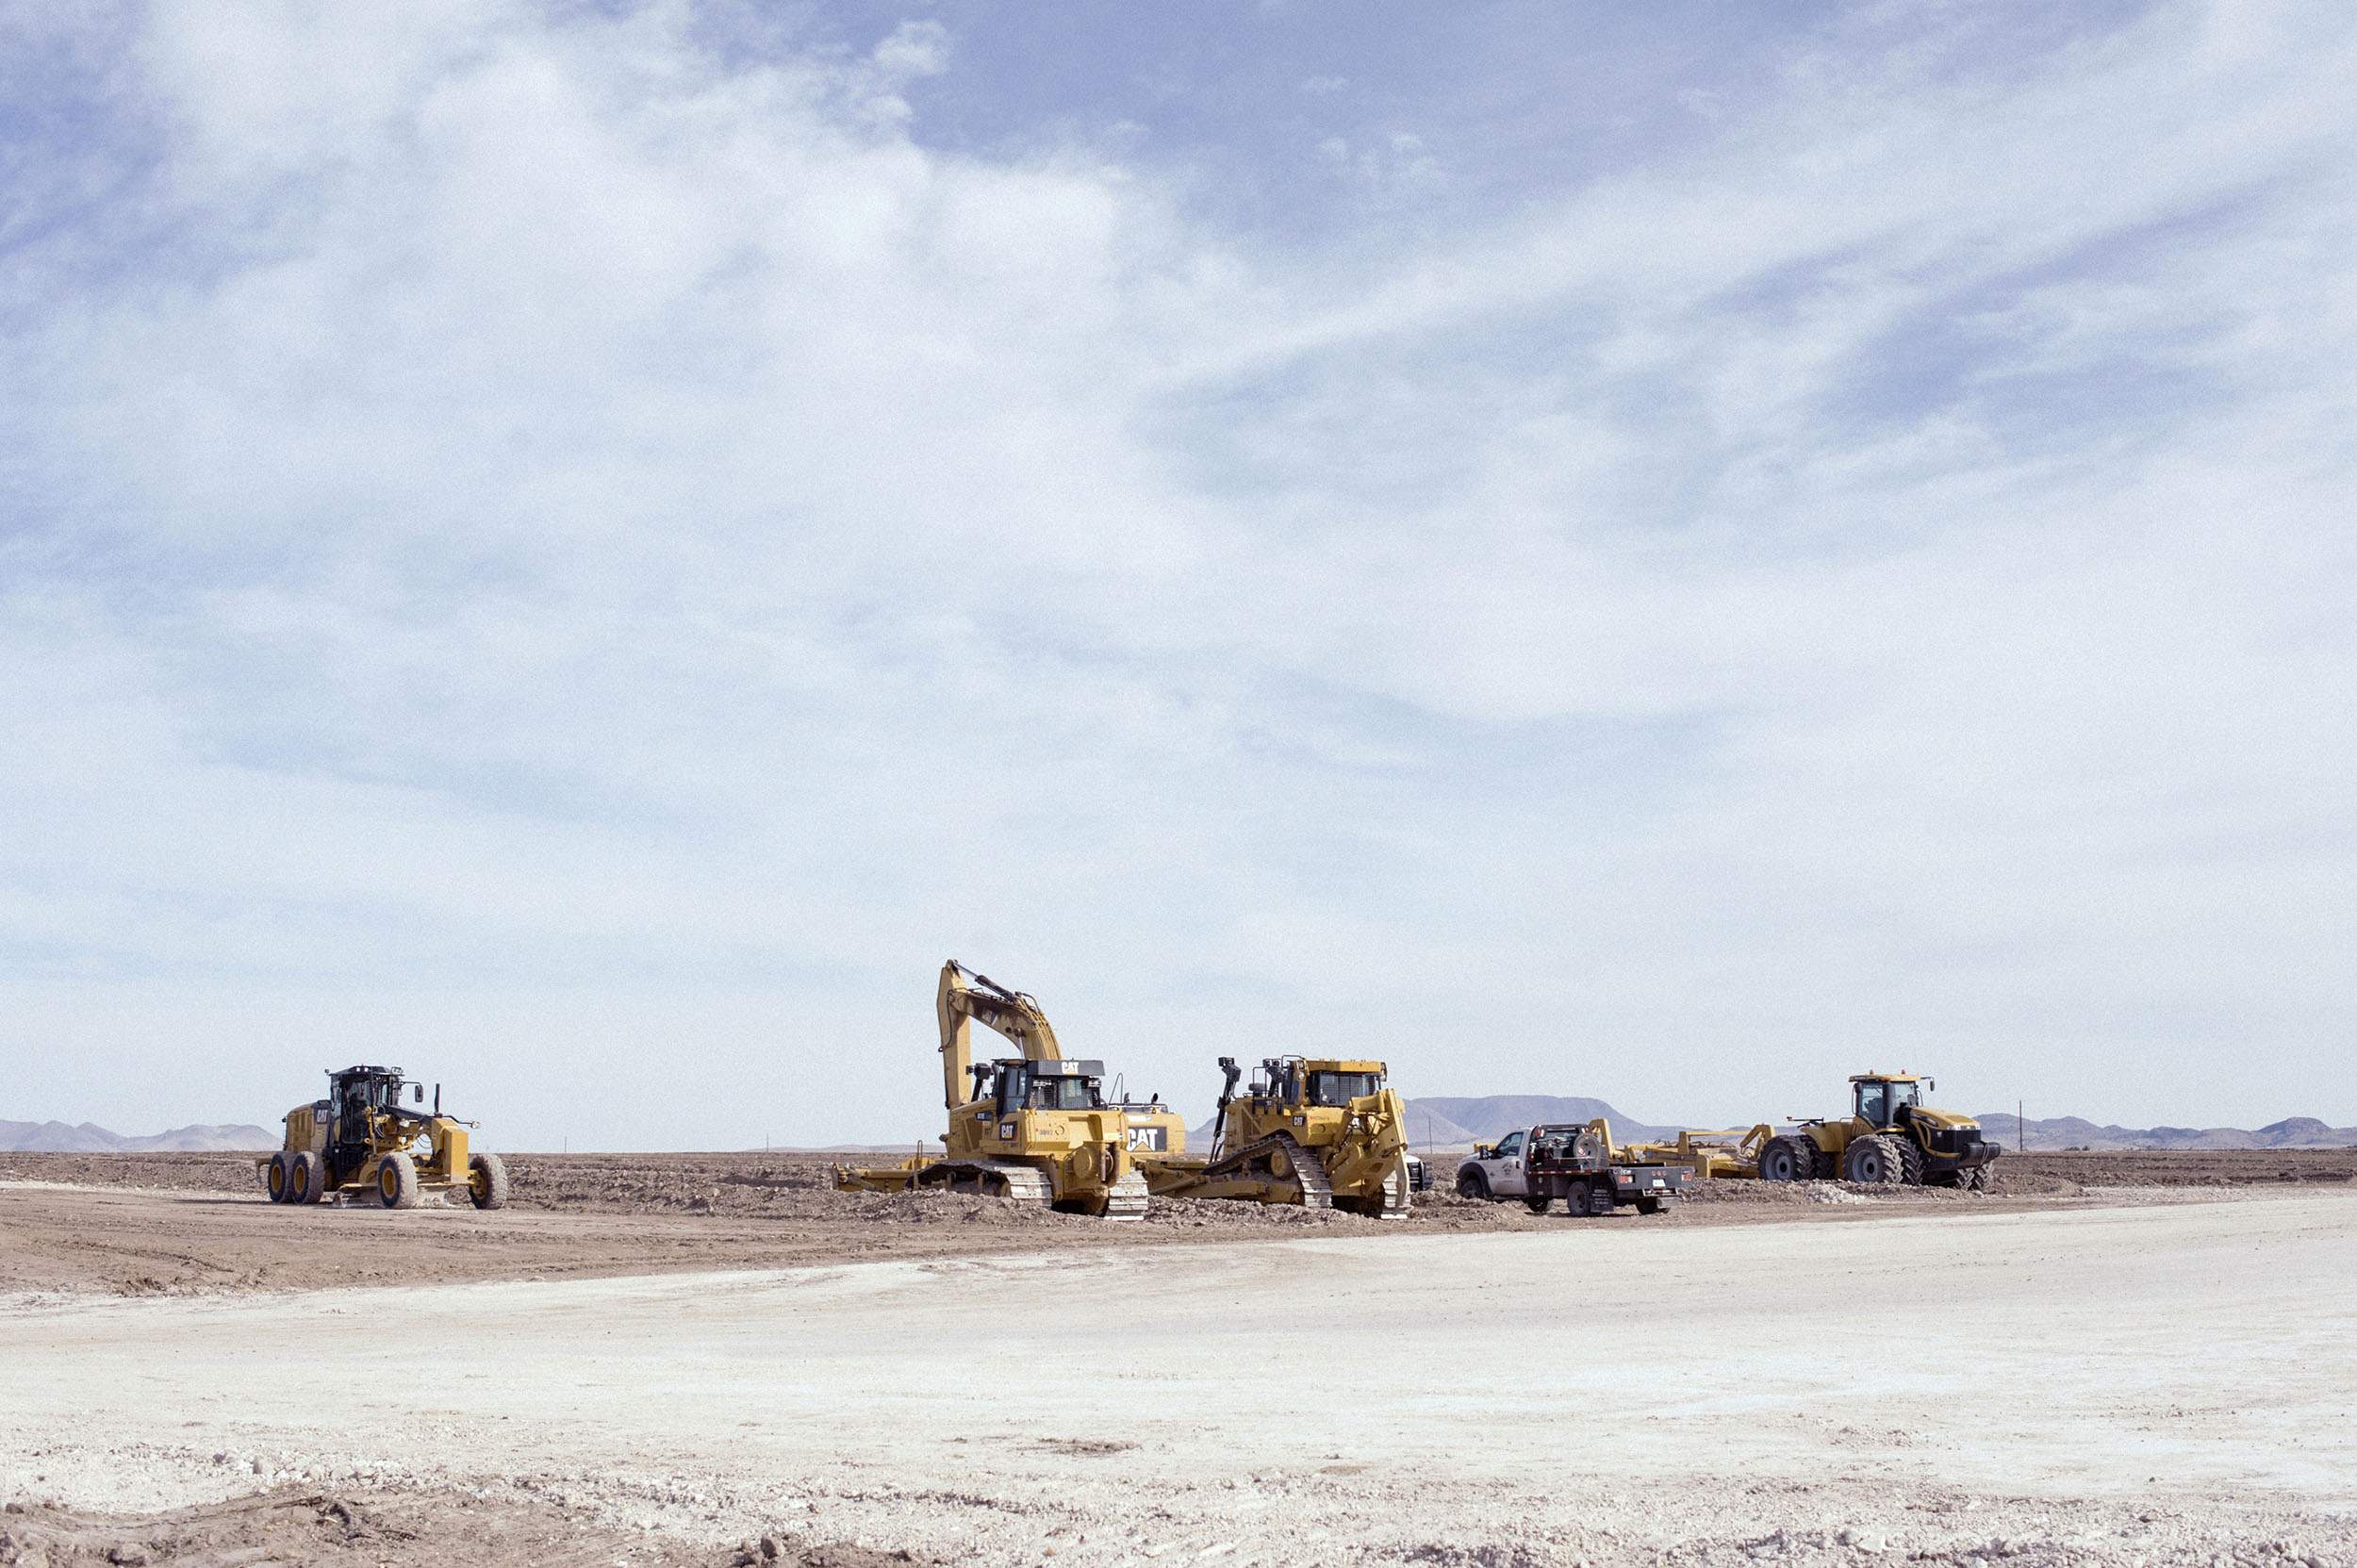 Machines clear an area of private land, on Nopal Road on the edge of Marfa, Texas.